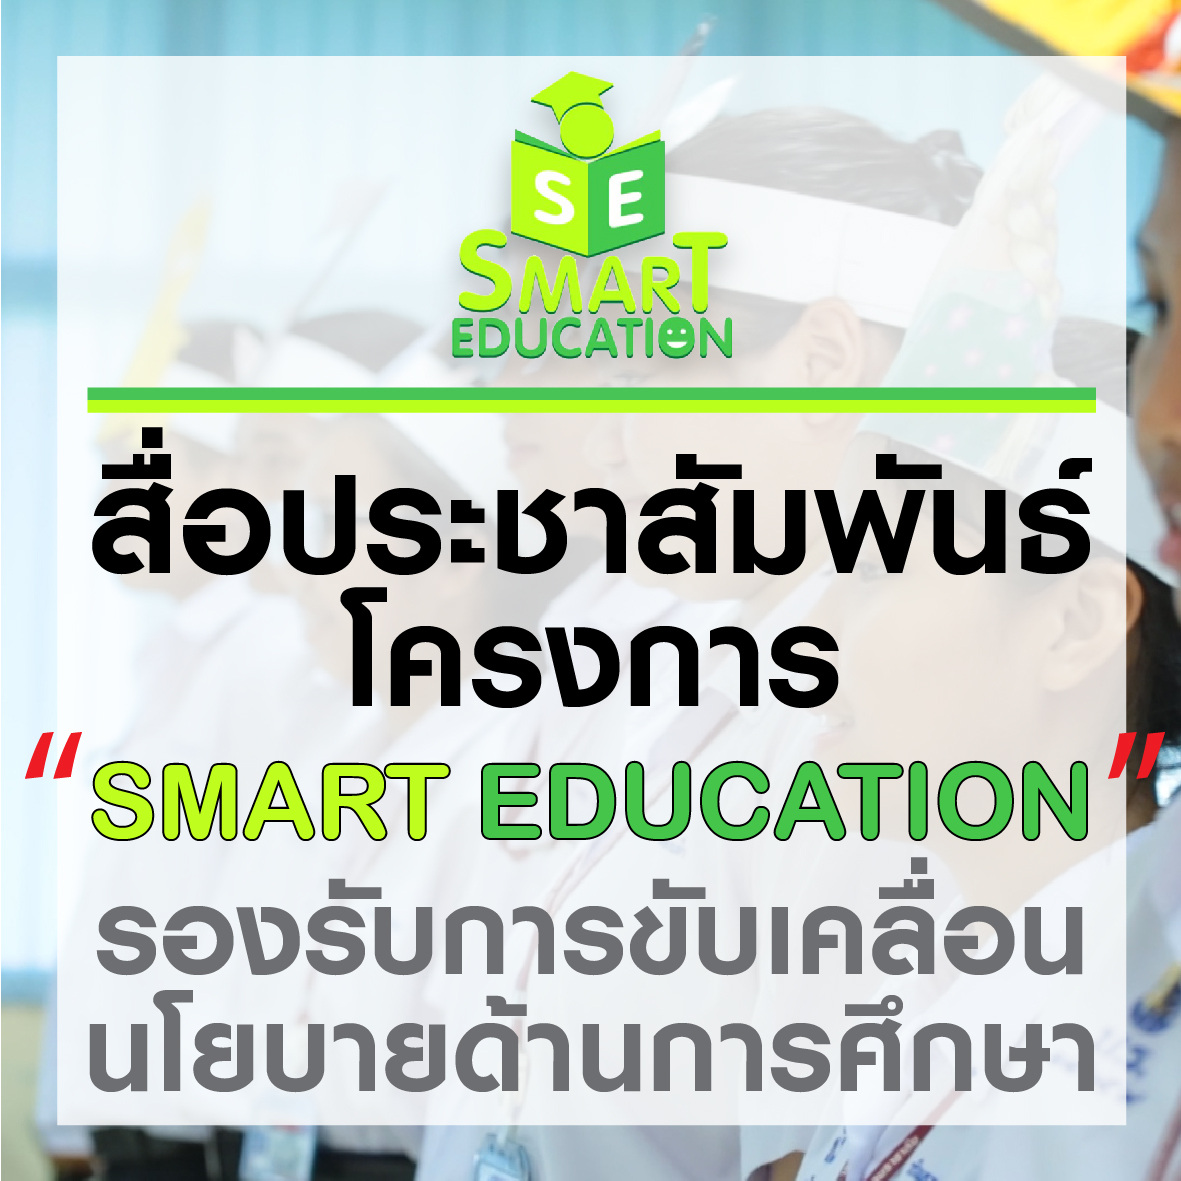 SMAERT EDUCATION